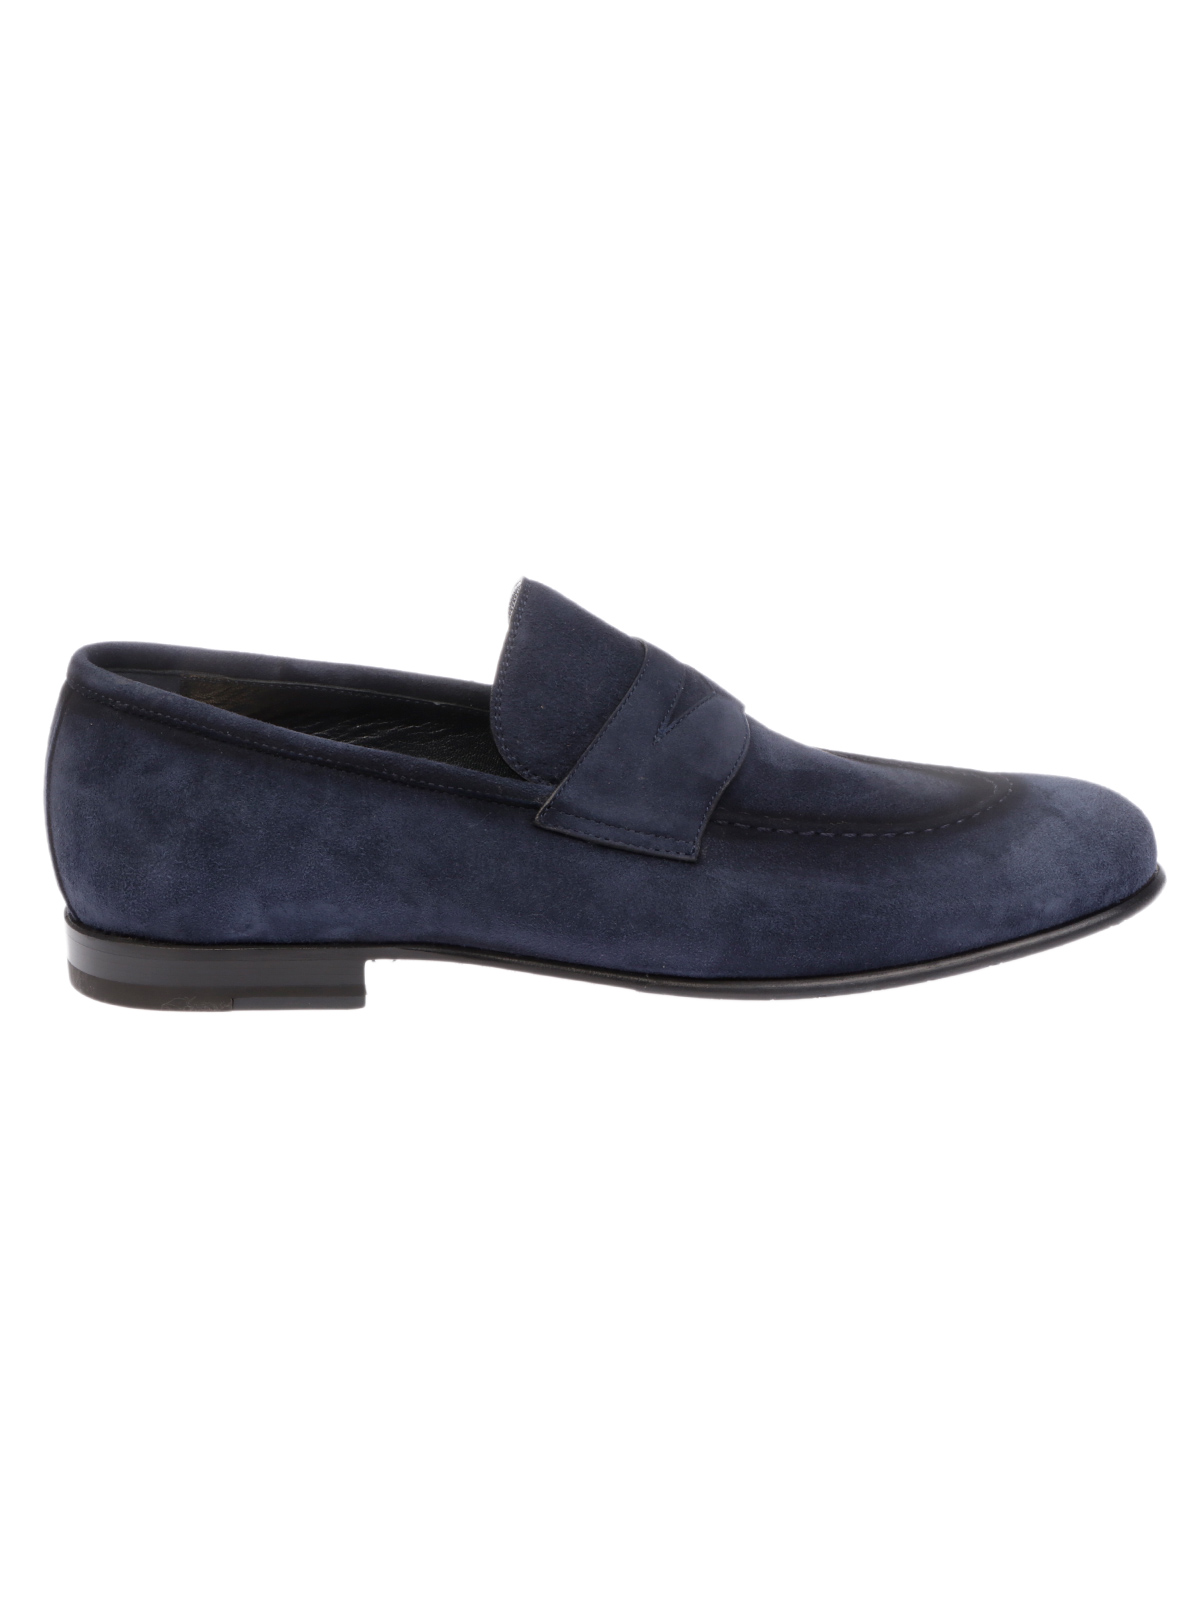 Picture of BARRETT | Men's Suede Penny Loafer